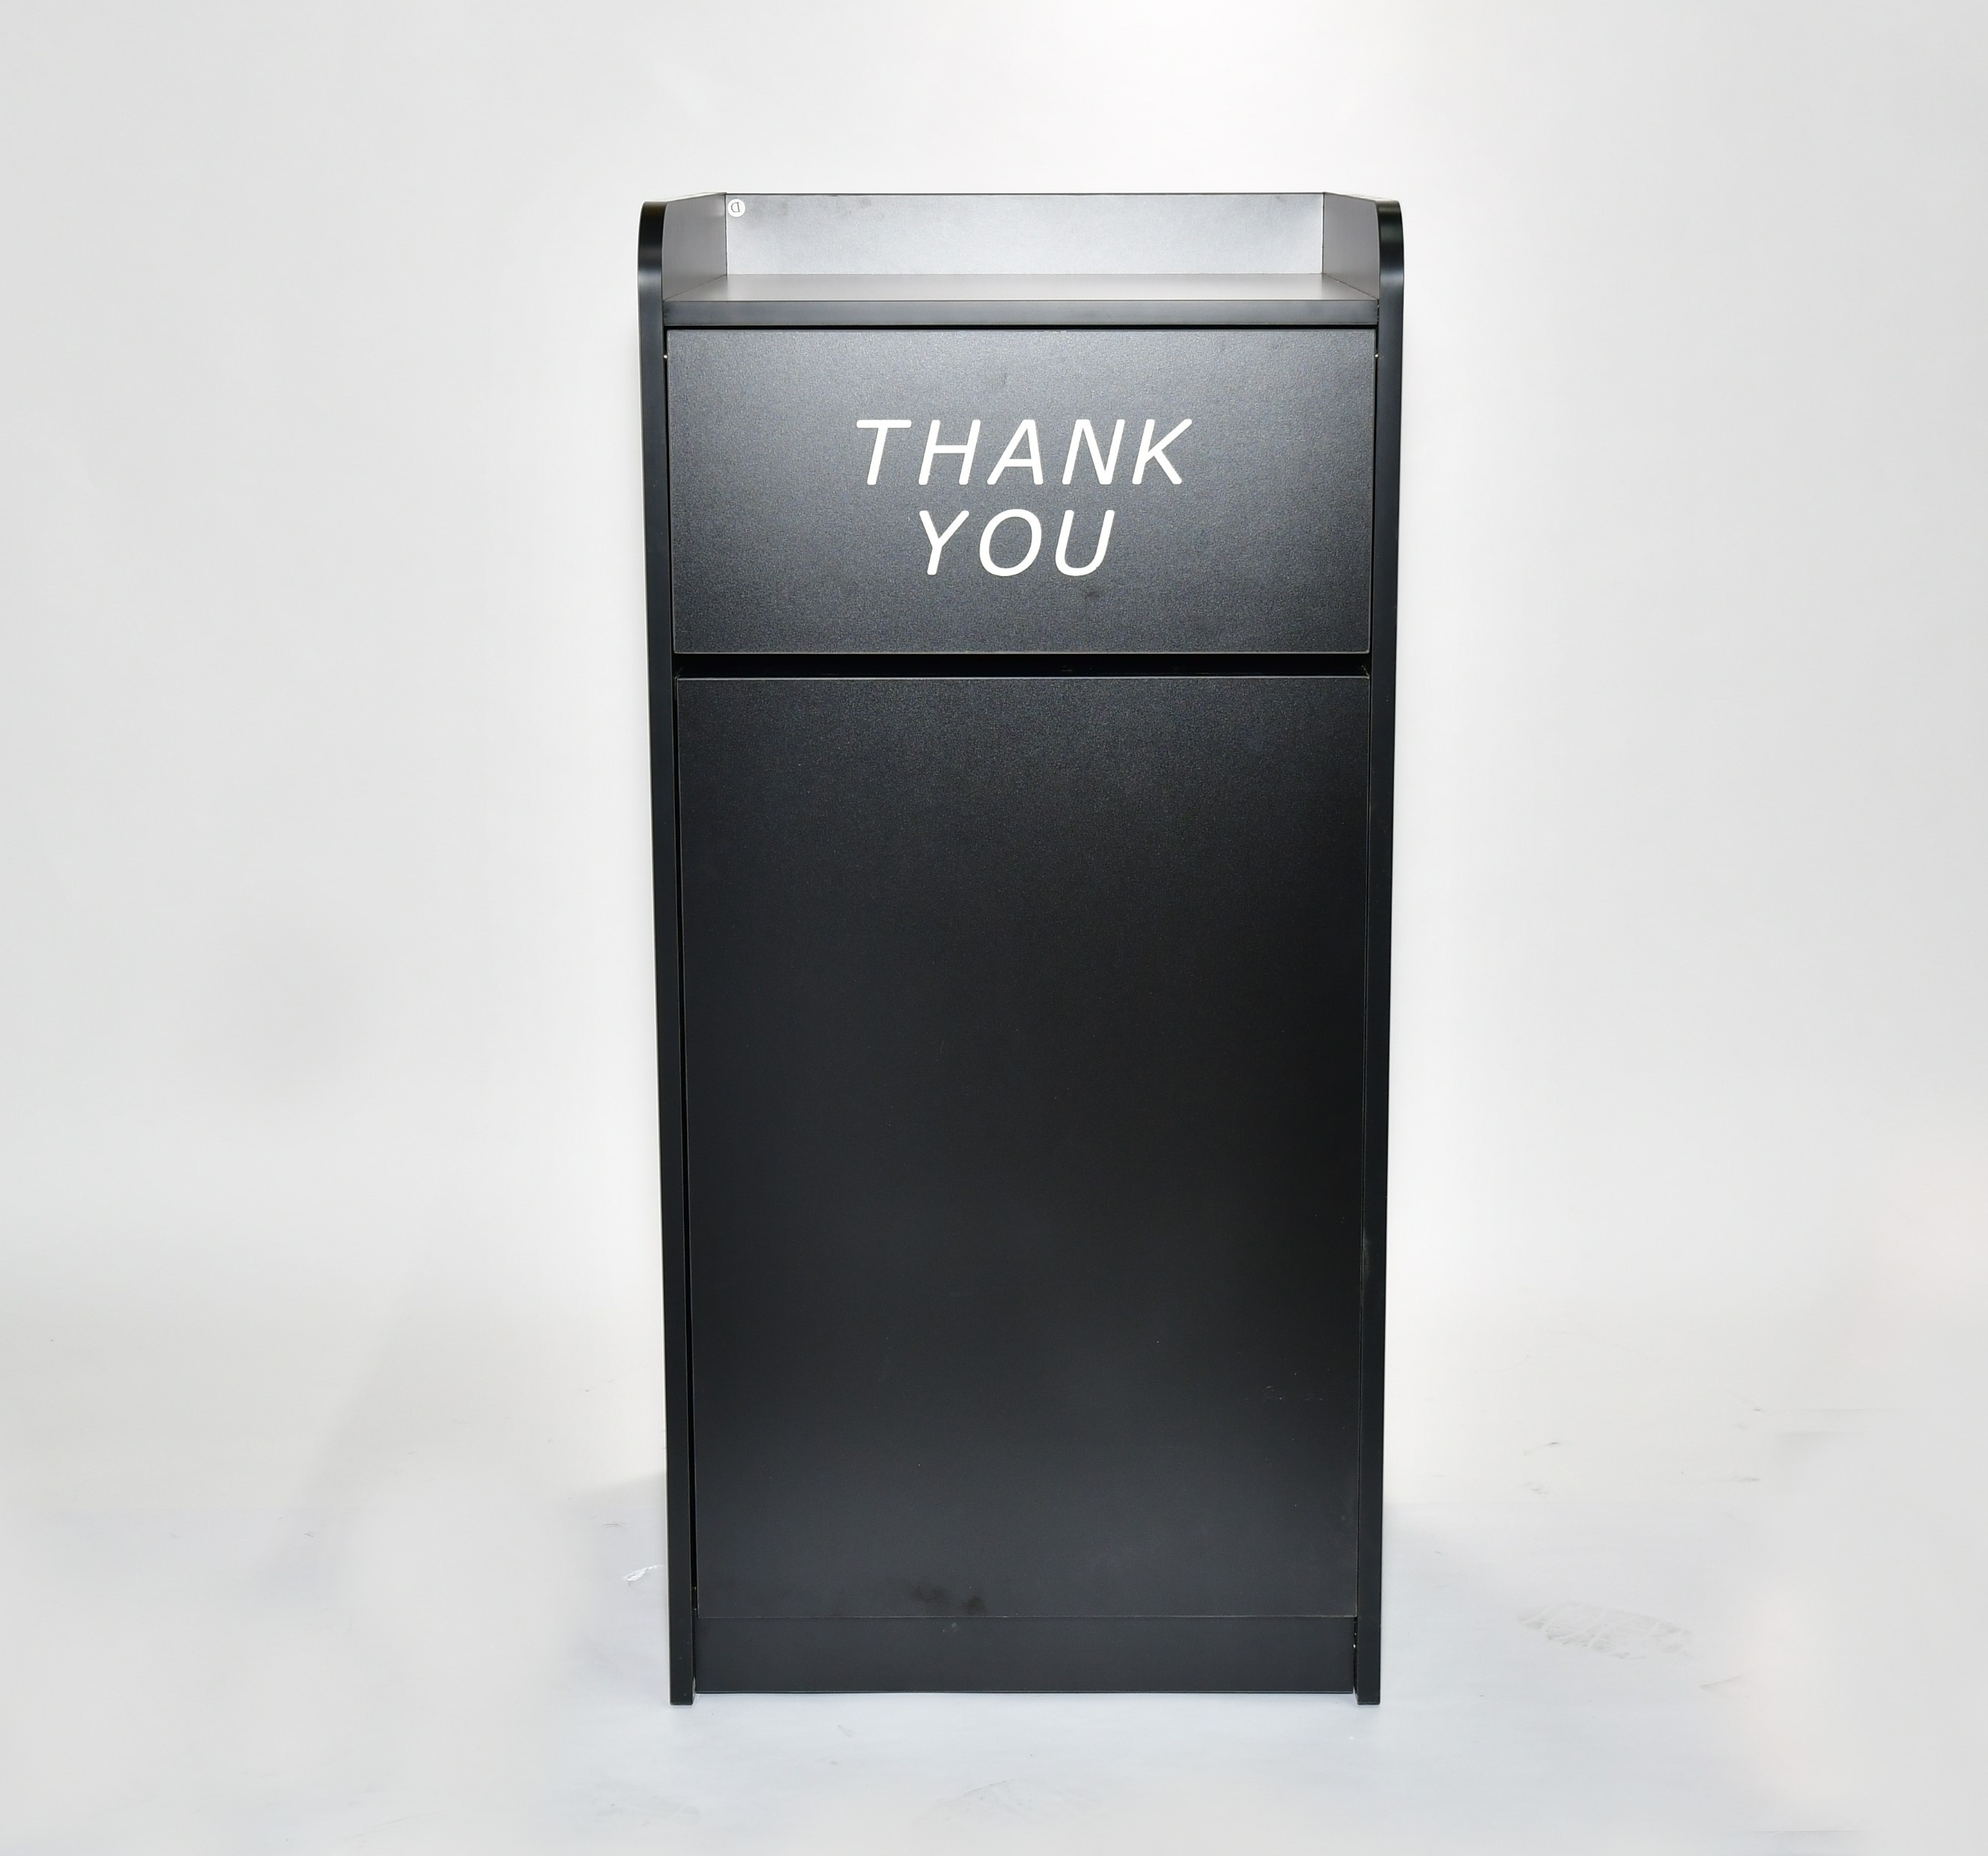 "Iron Guard- Lobby Receptacle, ""Thank You"" SKICCM8520 